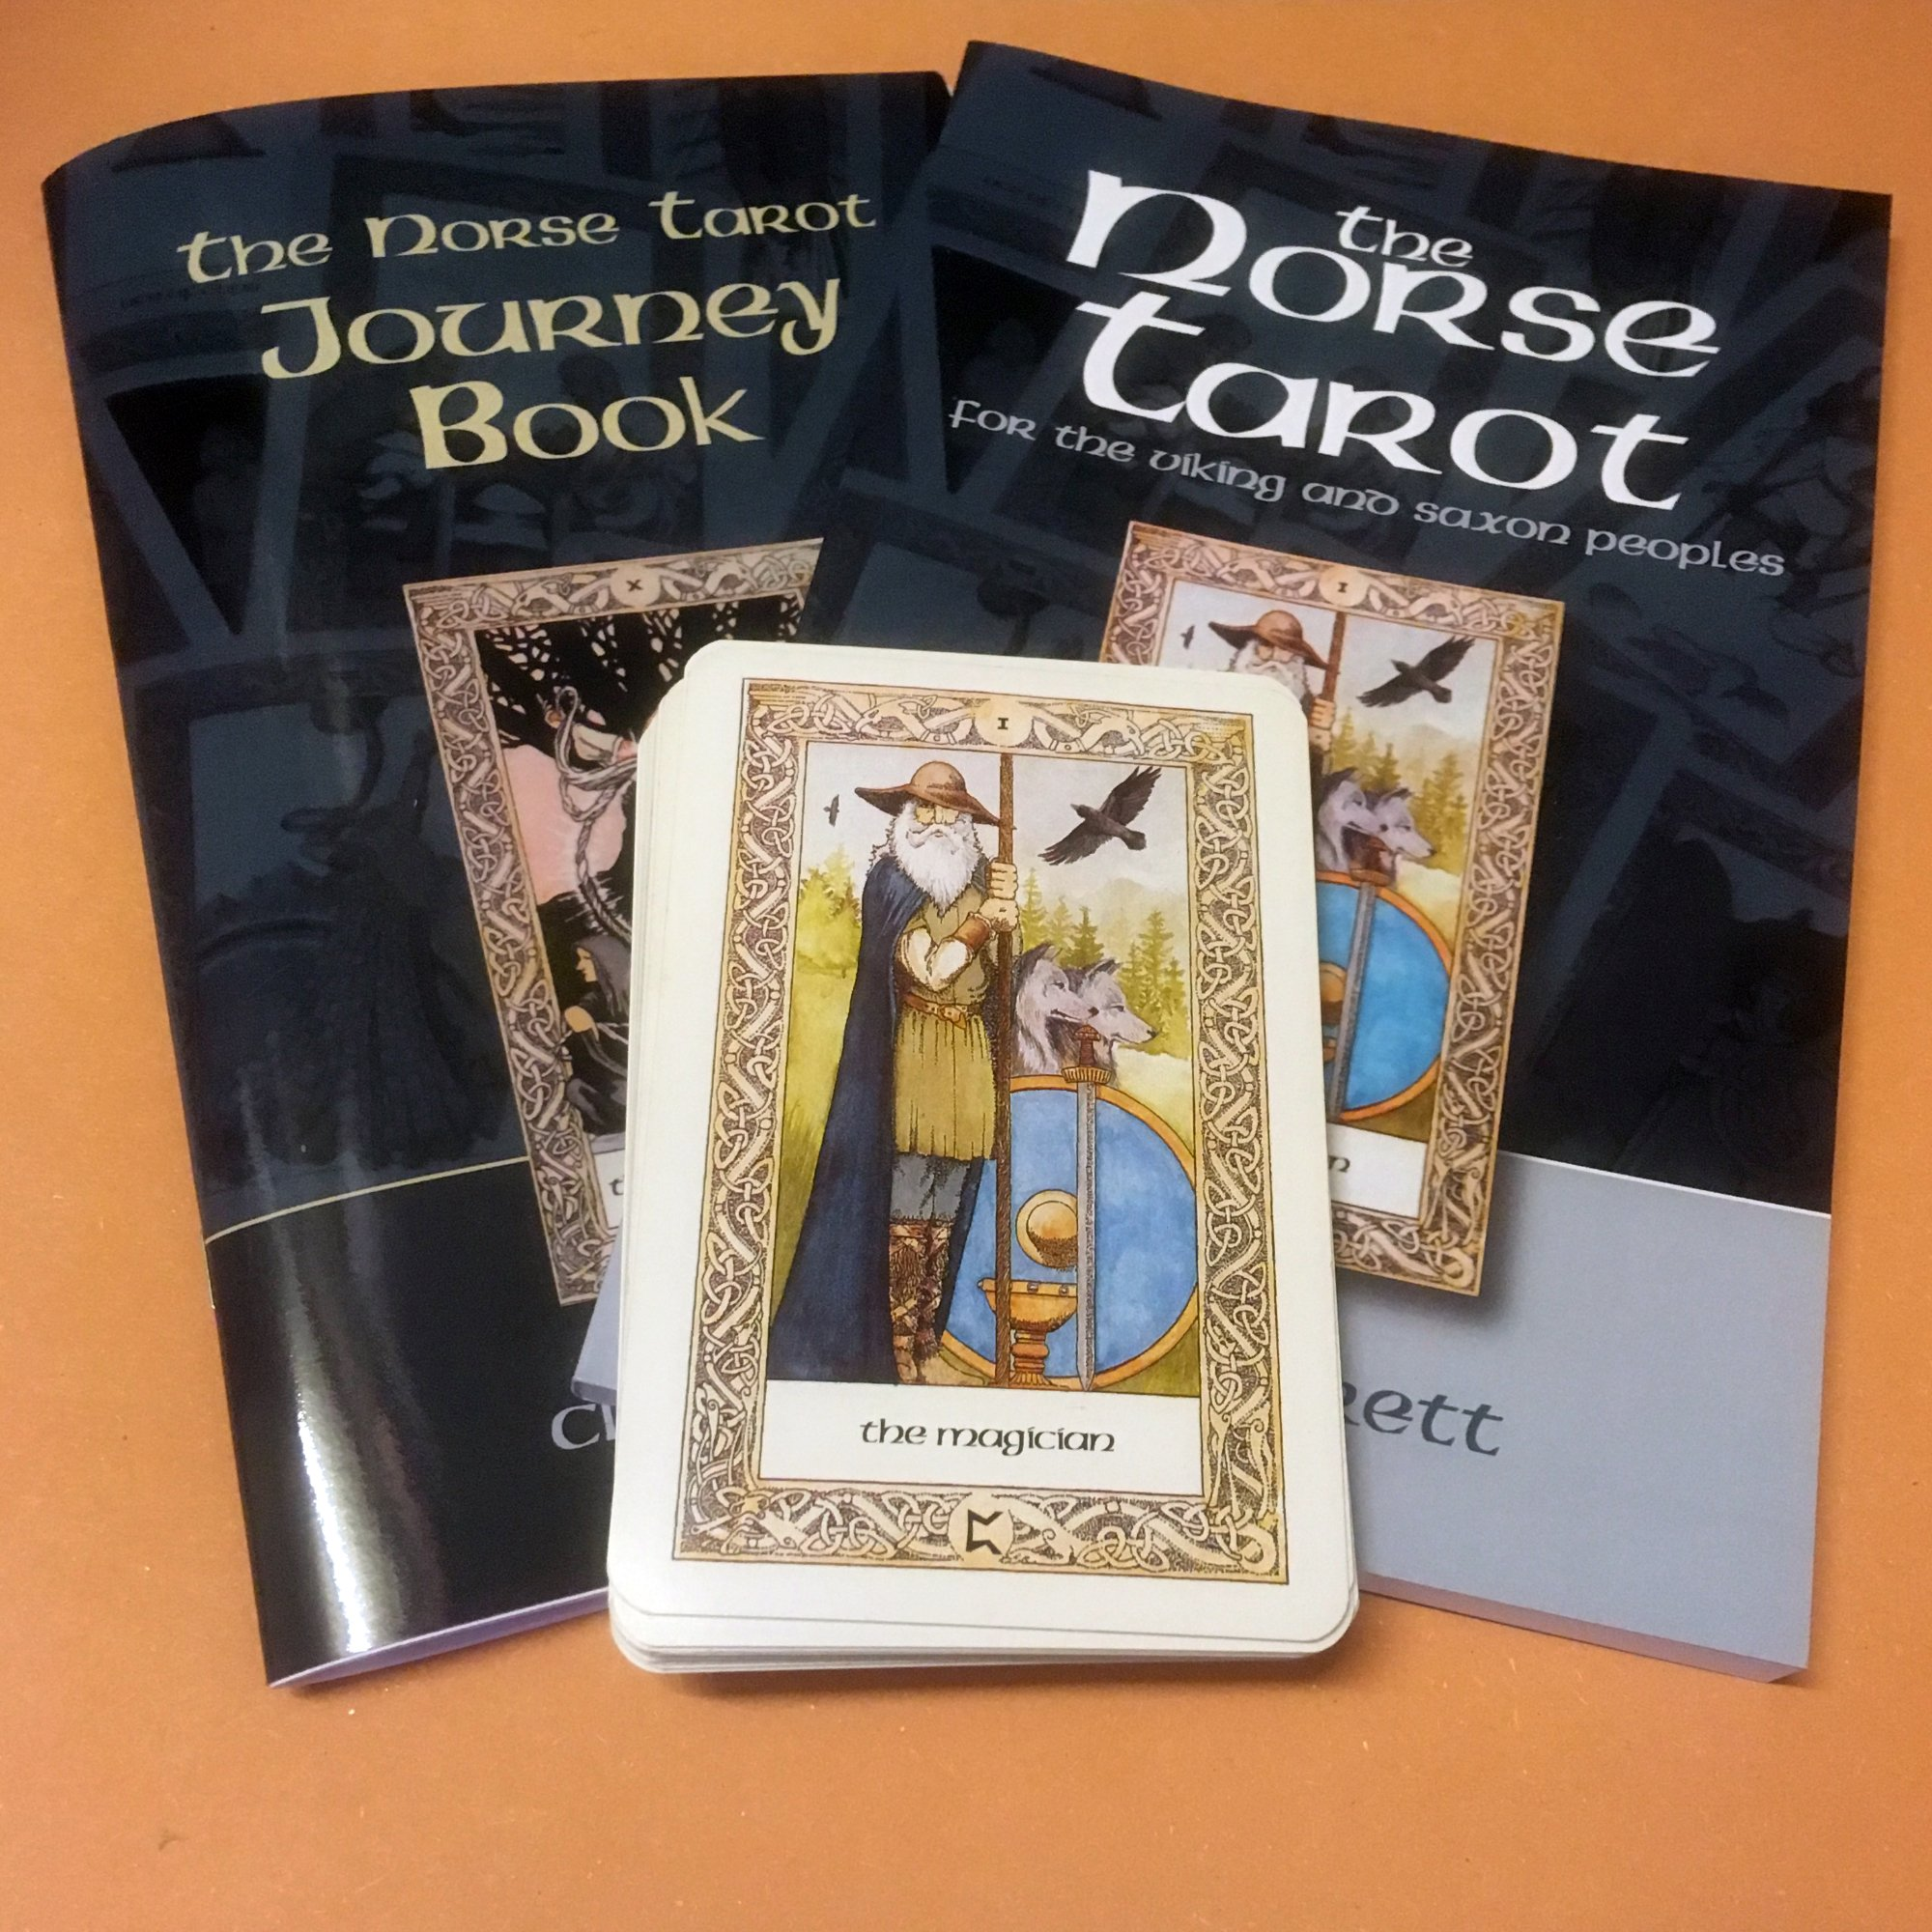 Deck, Handbook, and Journey Book